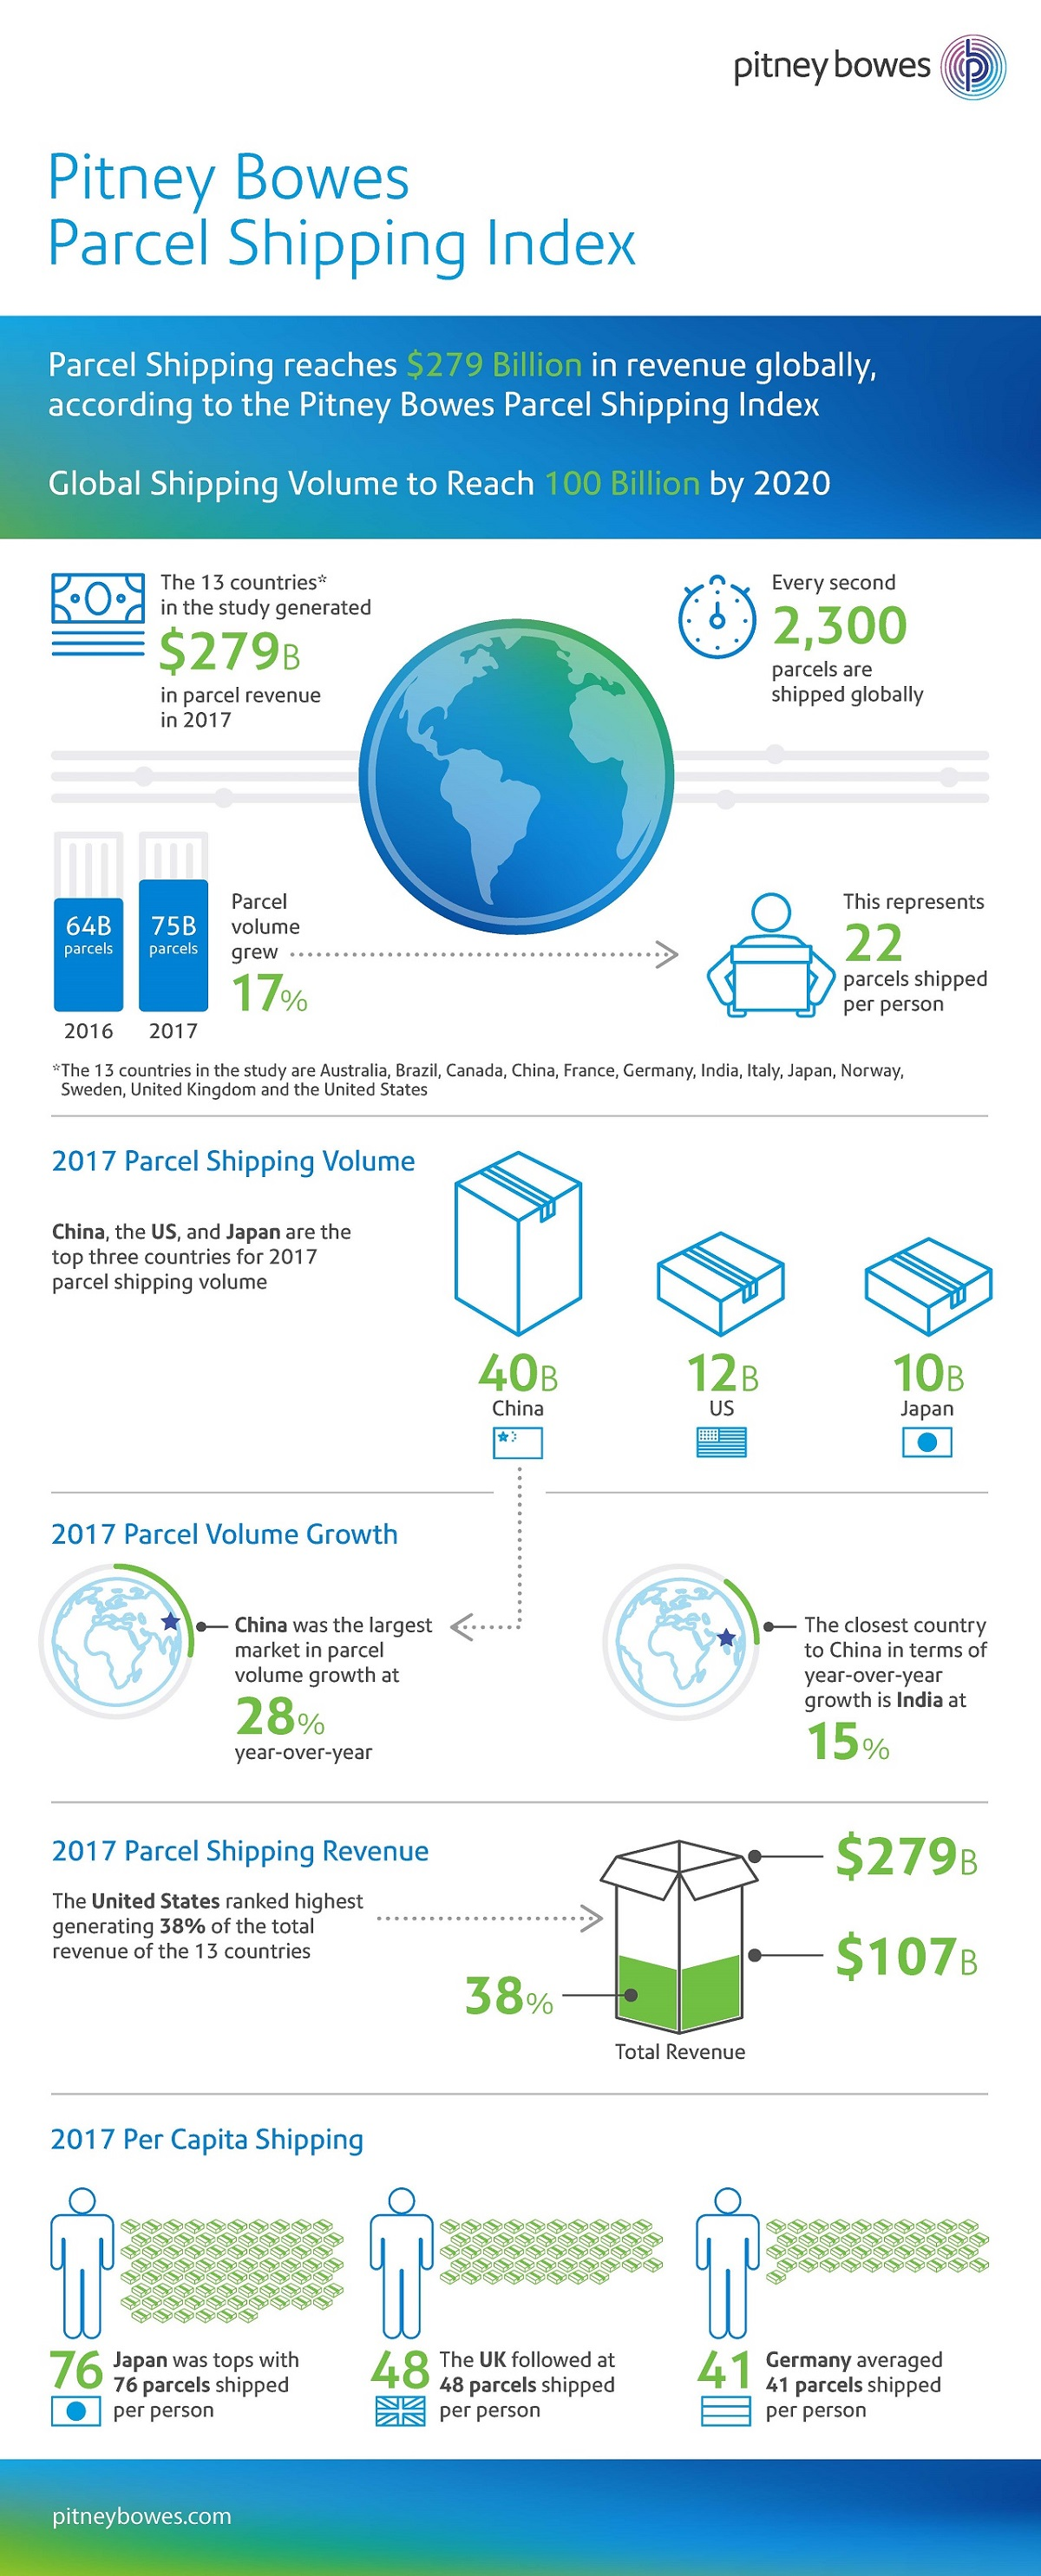 Pitney Bowes Parcel Shipping Index